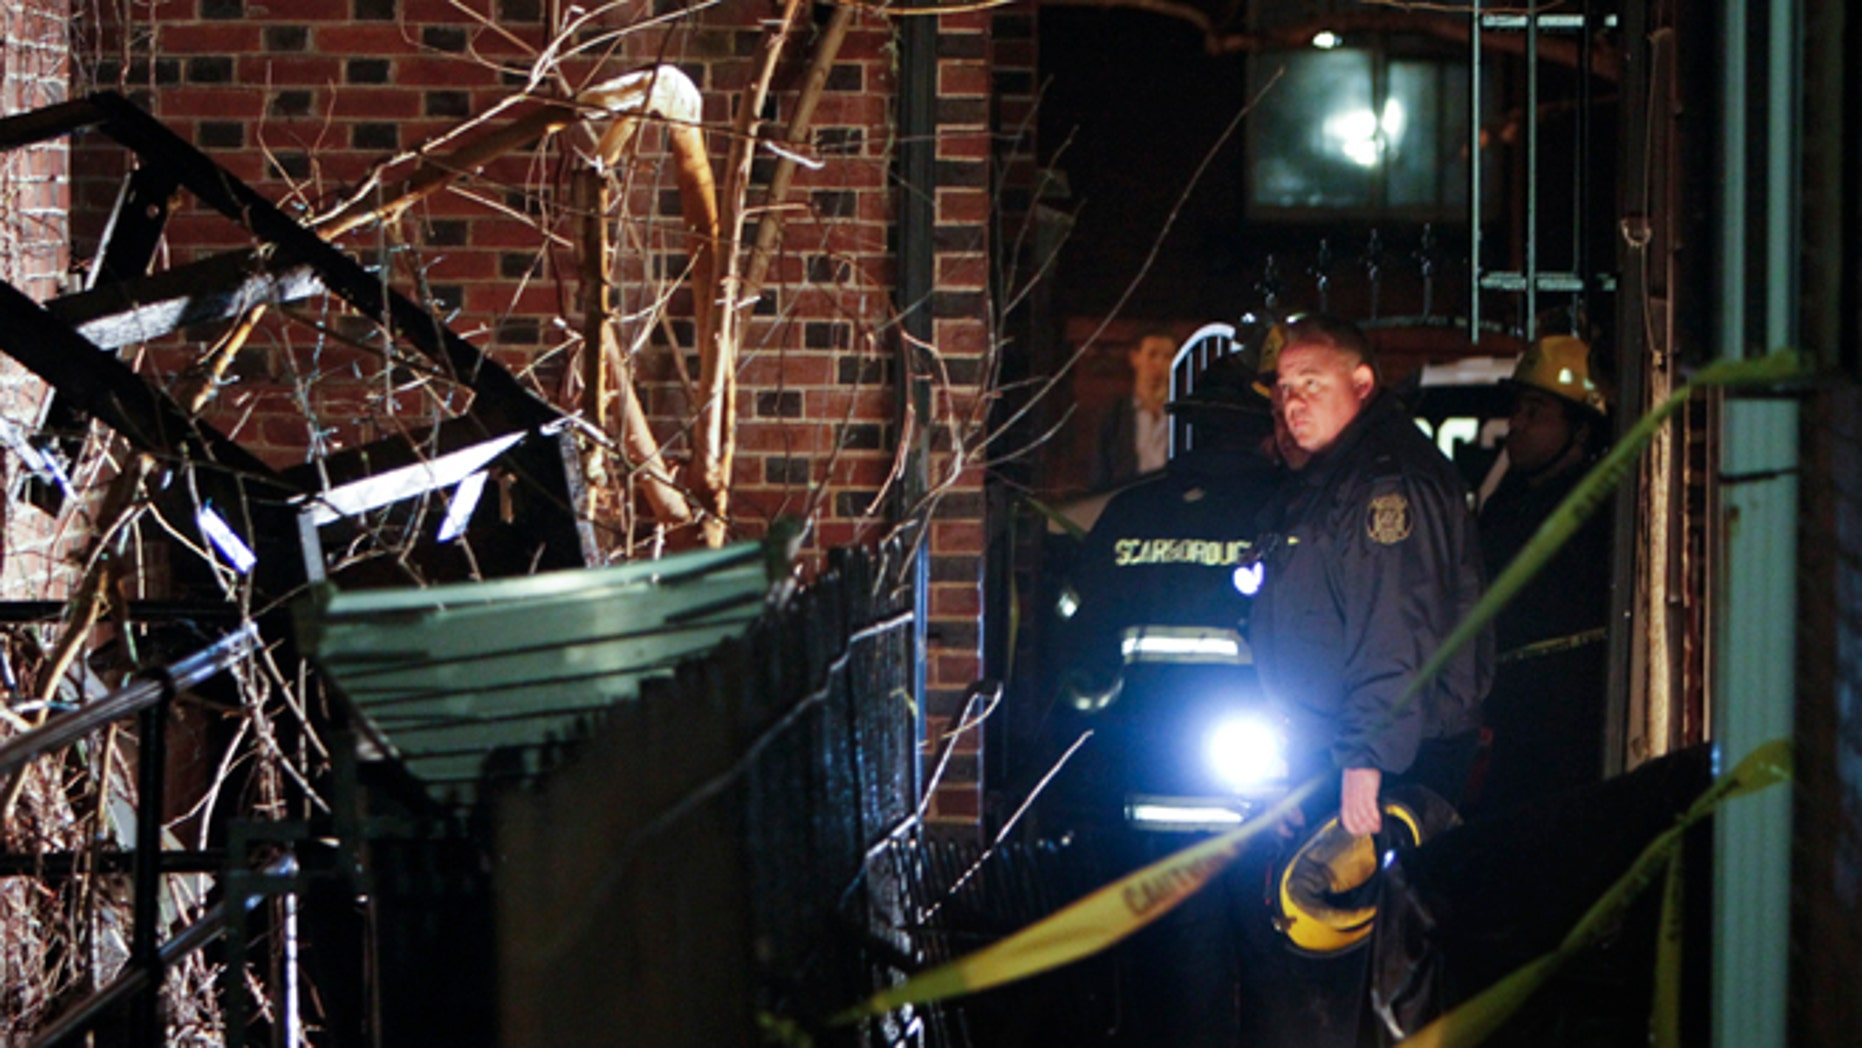 Jan. 12, 2014: Firefighters look up at the fire escape landing that collapsed around midnight Saturday in the Rittenhouse Square section of Philadelphia.